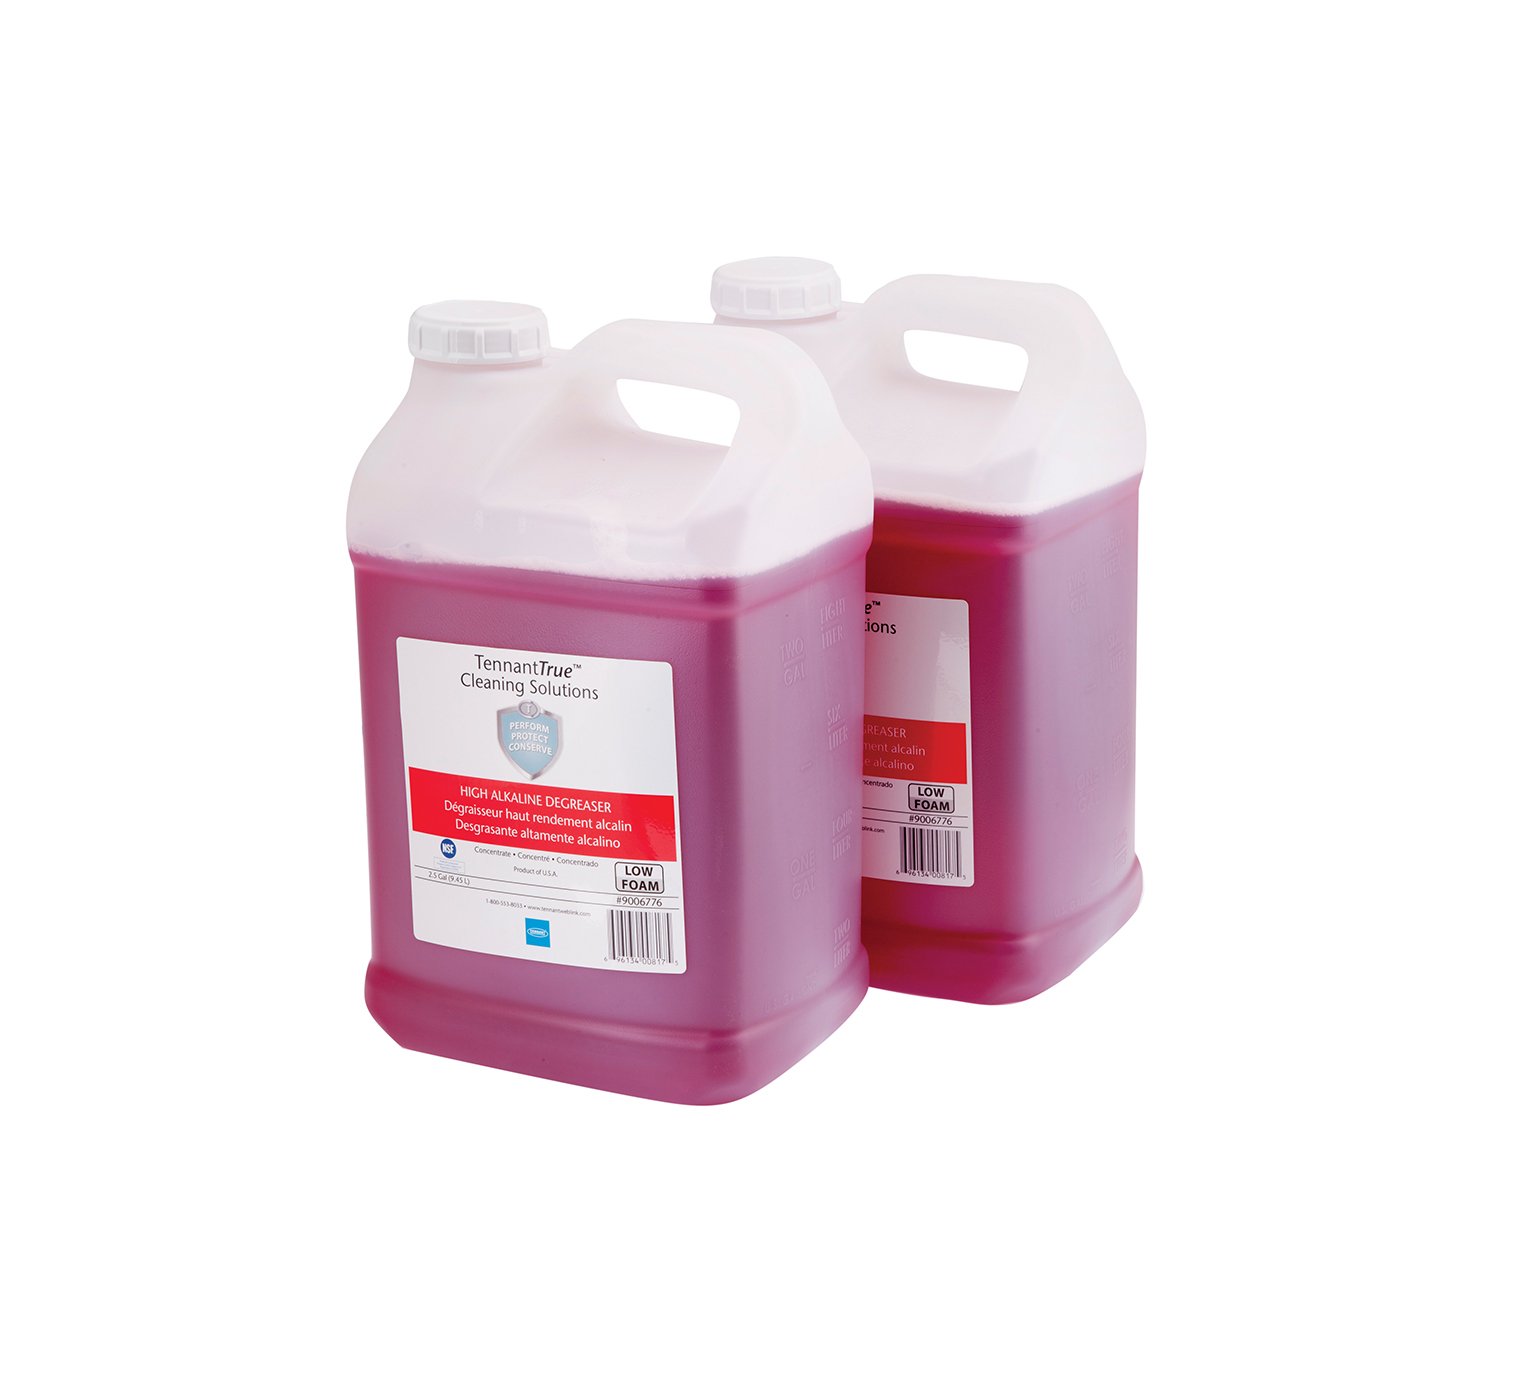 9006776 Red High Alkaline Degreaser – (2) 2.5 gallon alt 1